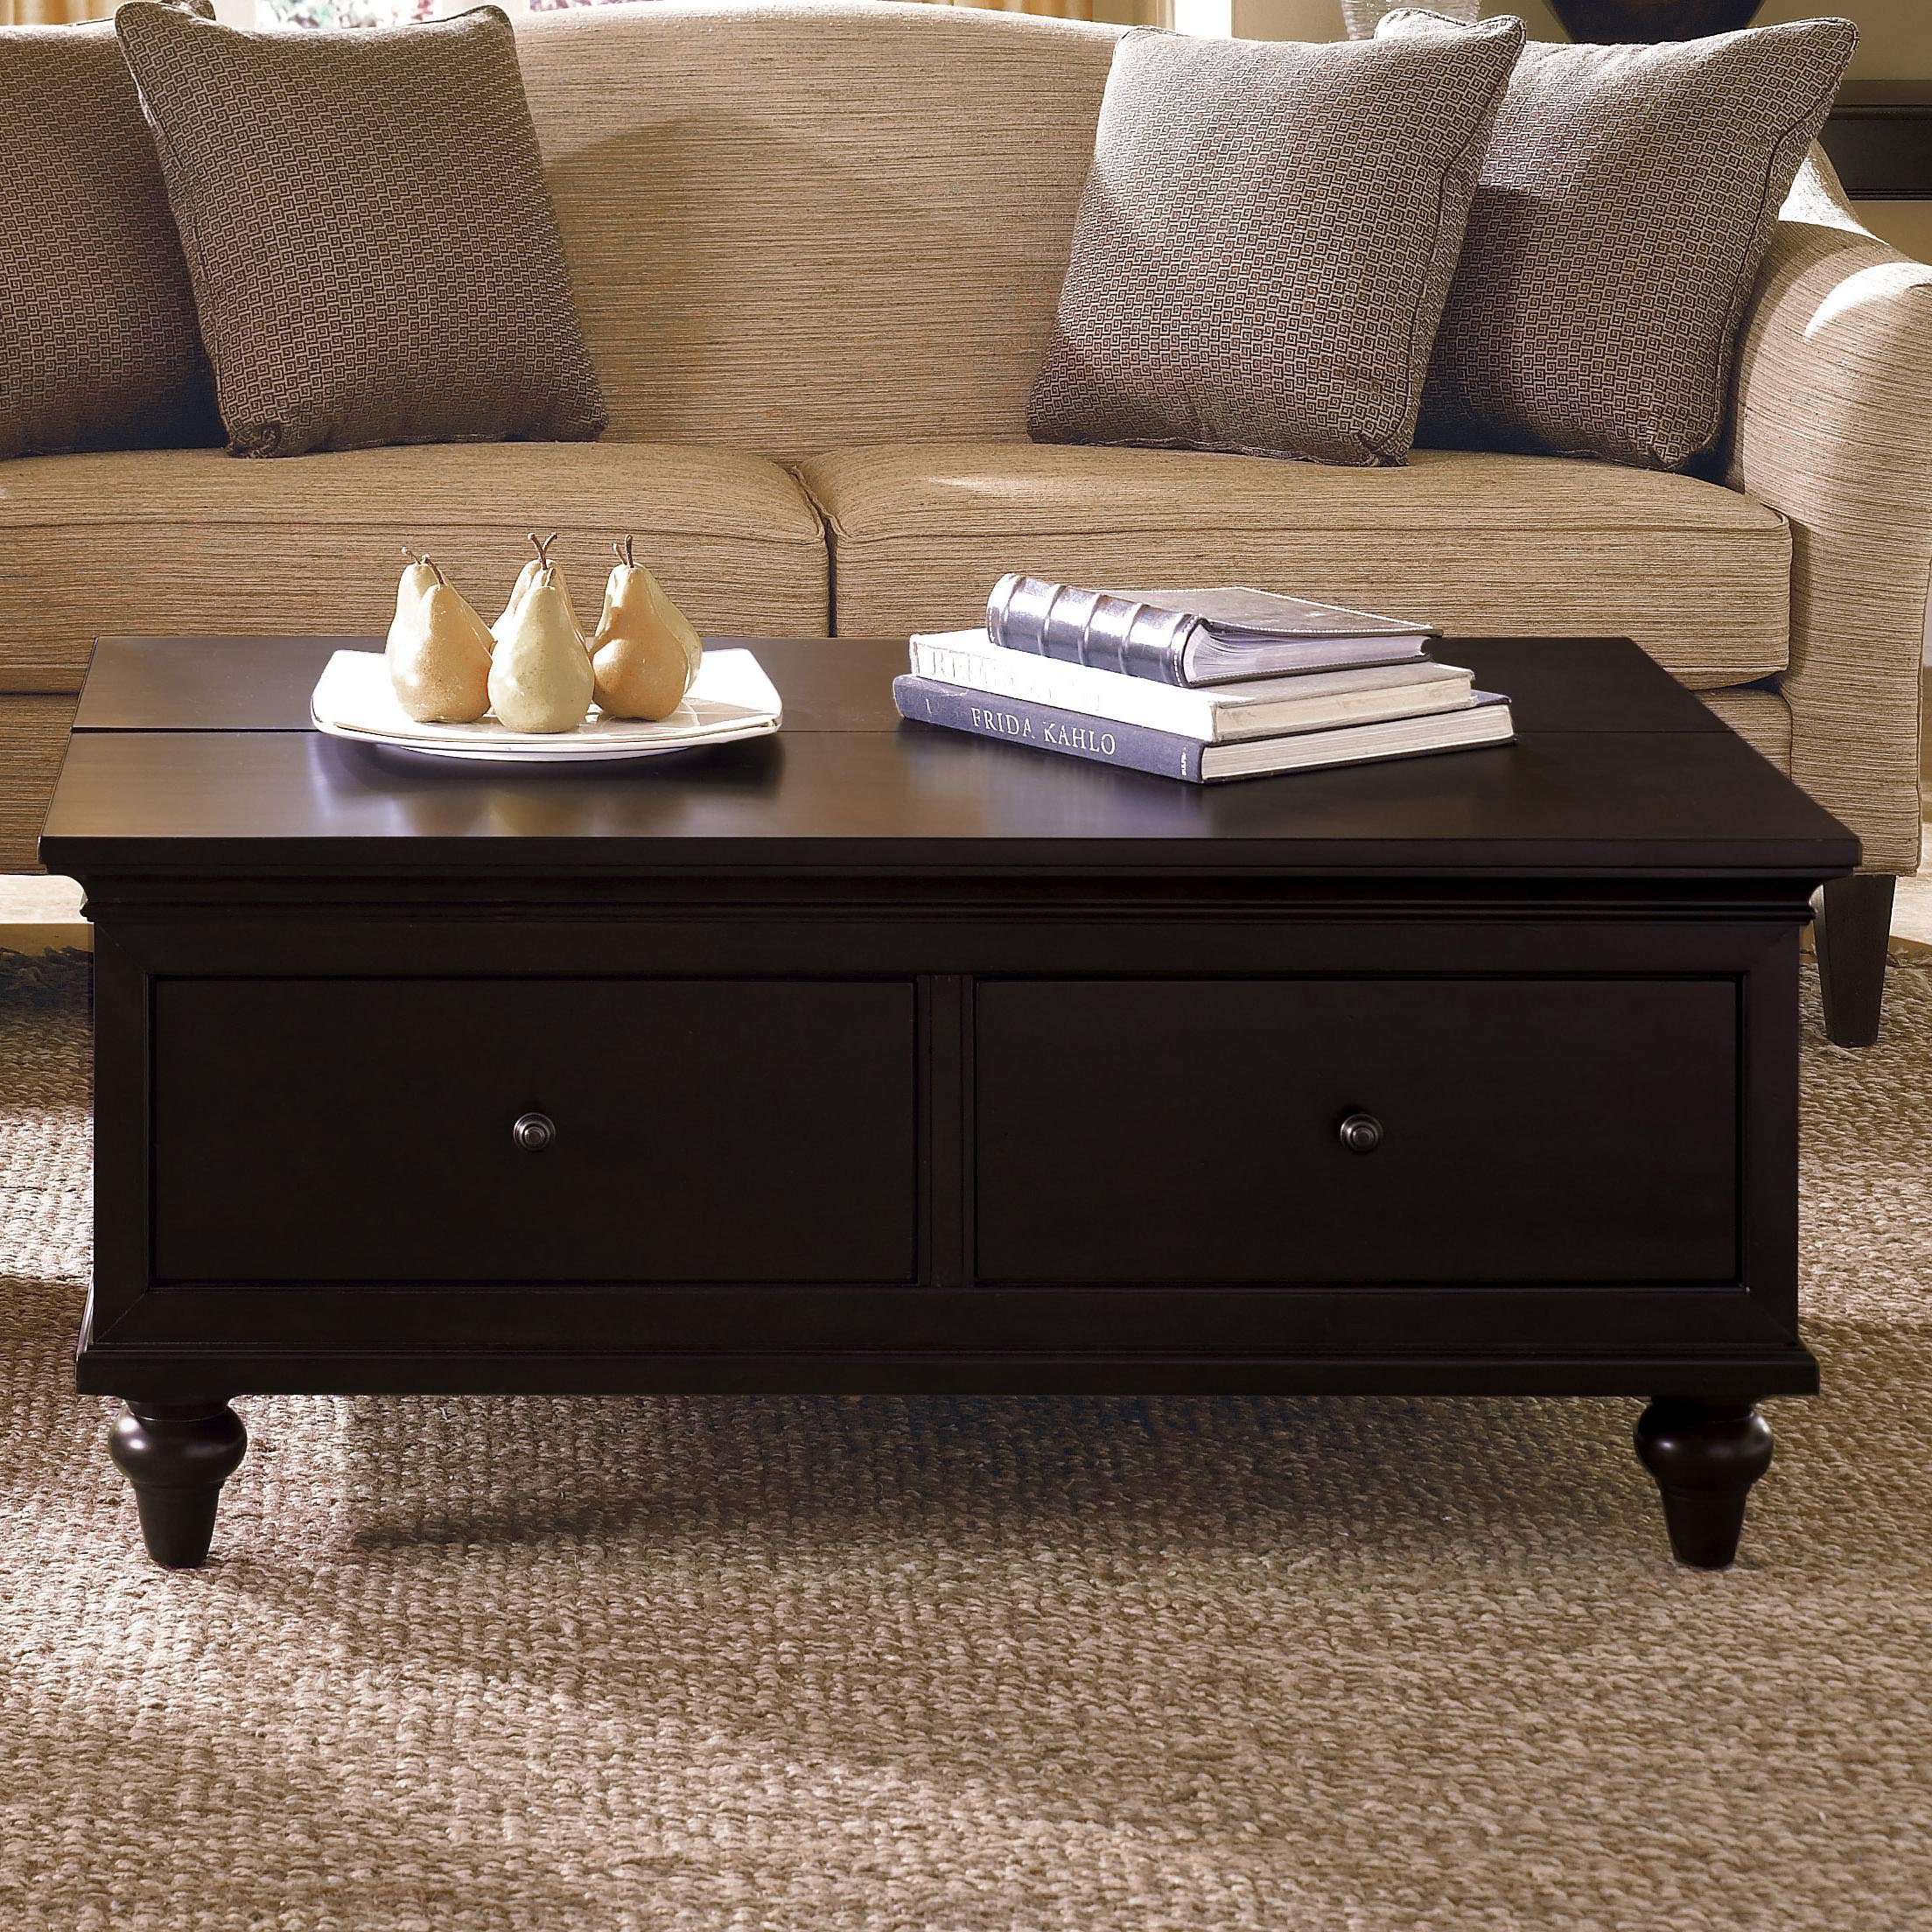 Small Coffee Table With Drawers Coffee Table Design Ideas